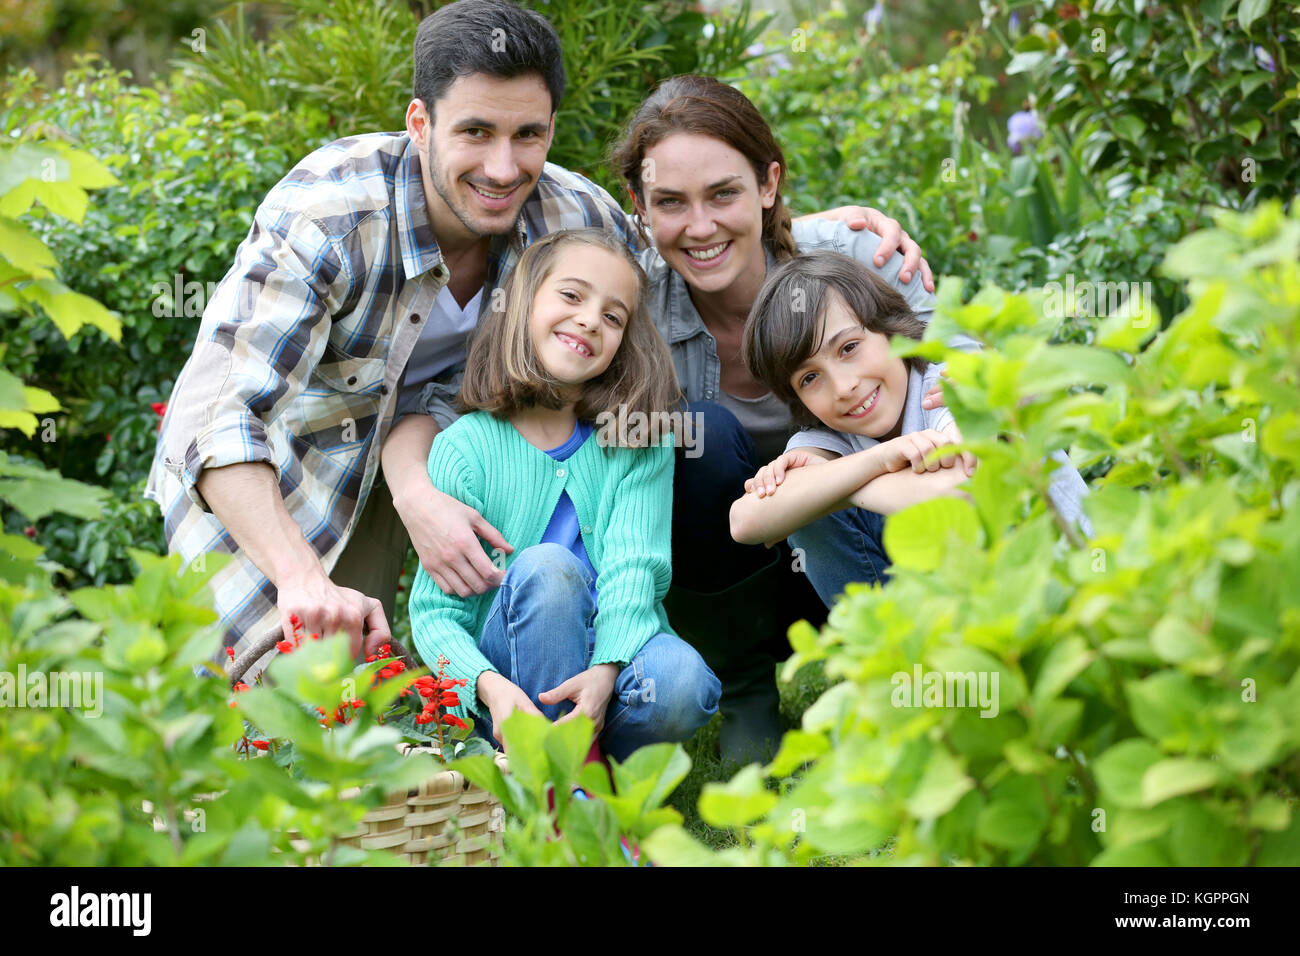 Portrait of happy family gardening together - Stock Image